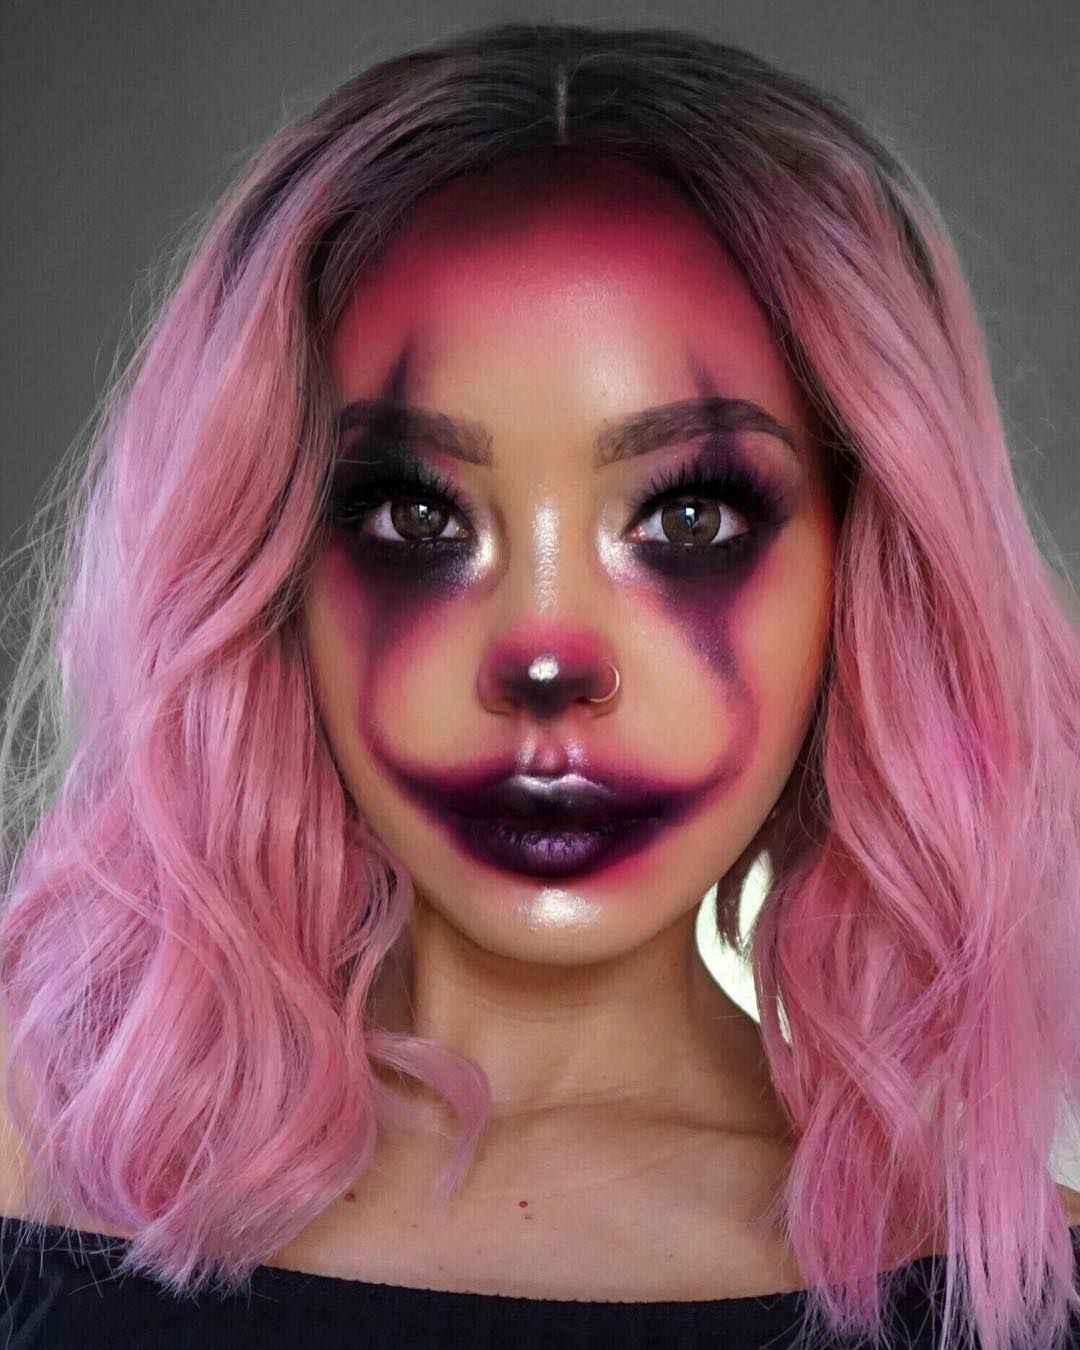 They said I looked like a clown when I put on my makeup